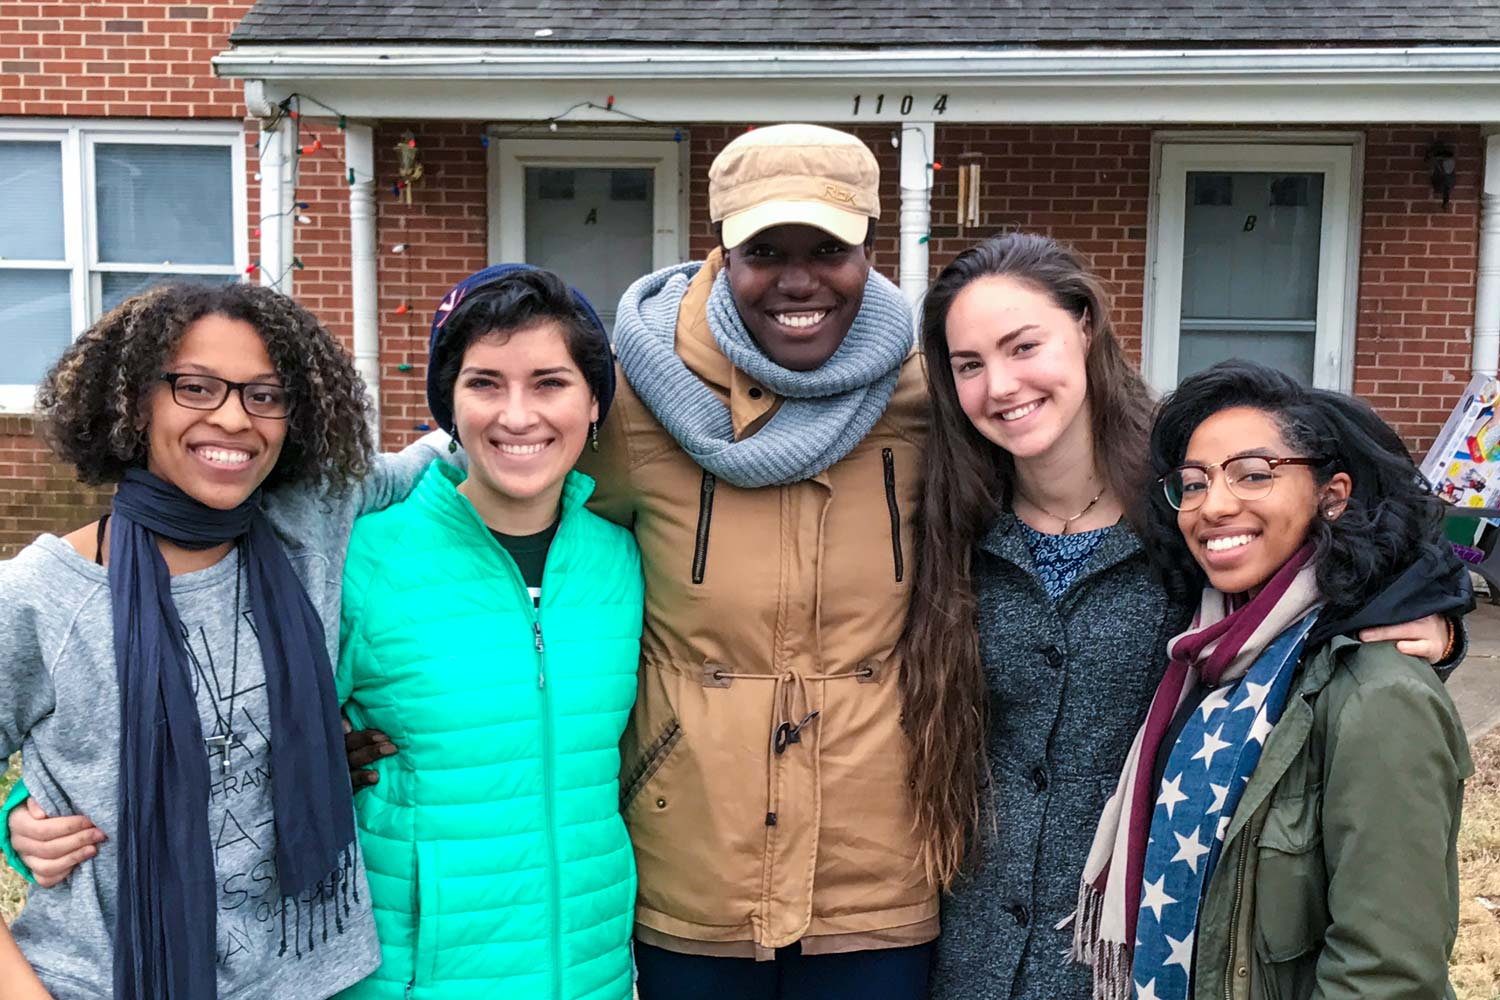 Third-year students Ameenah Elam, Sarah Bland, Sade Akinbayo, Isabella Hall and Dominique DeBose will be the first residents of The Perkins House. (Contributed photo, taken earlier this year)